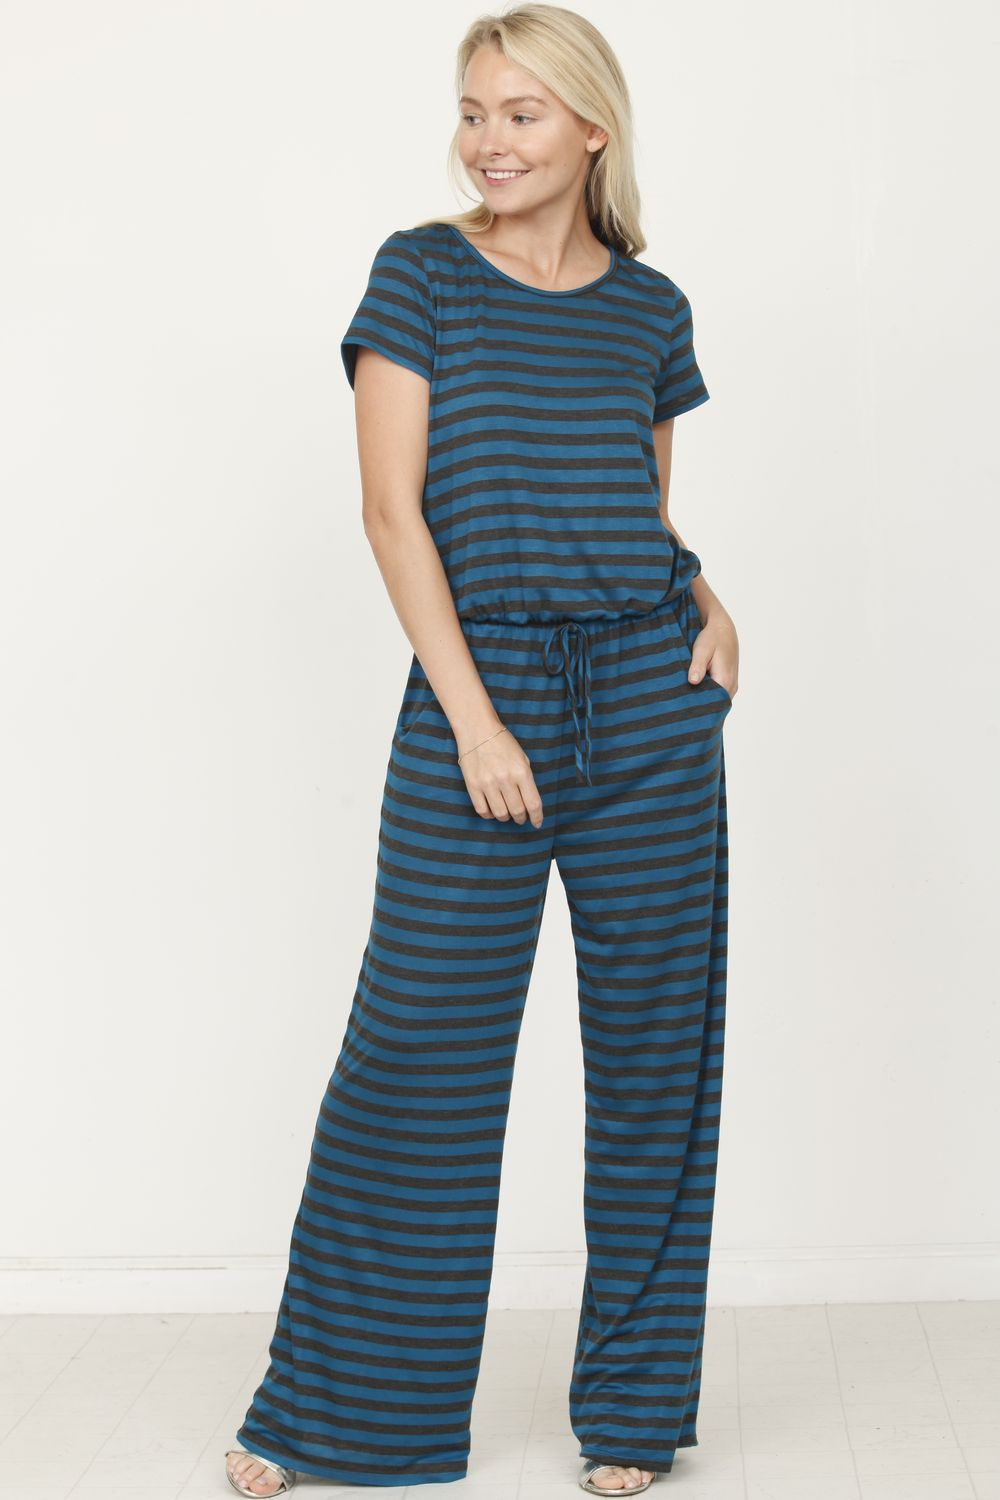 Teal Charcoal Stripe Short Sleeve Jumpsuit